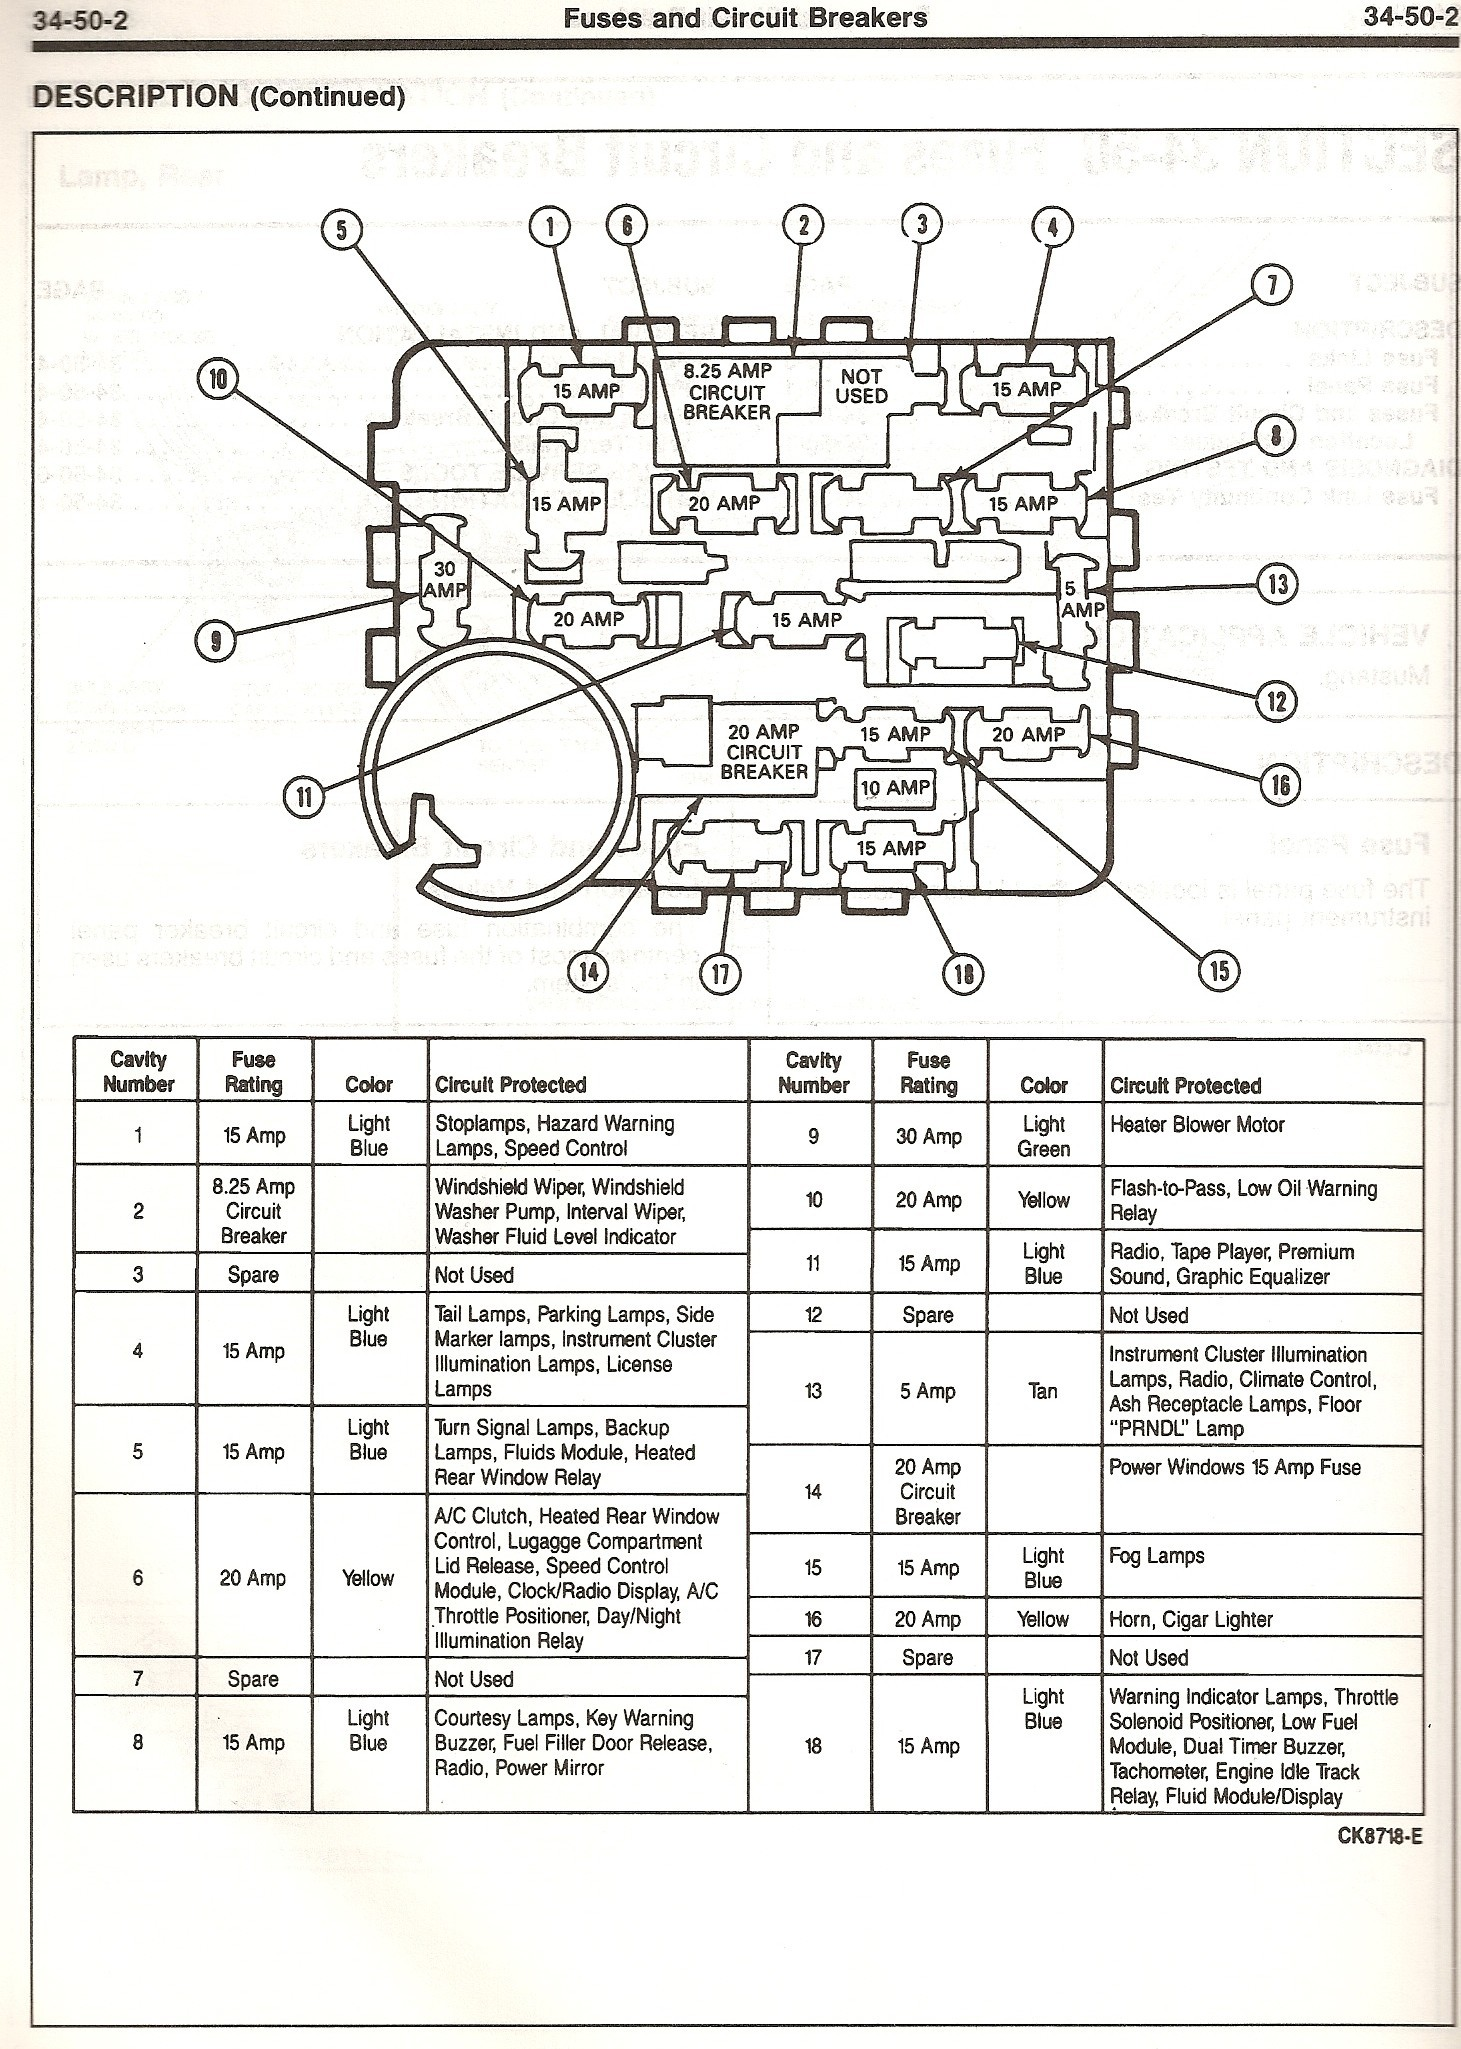 2005 Cadillac Deville Fuse Box Diagram